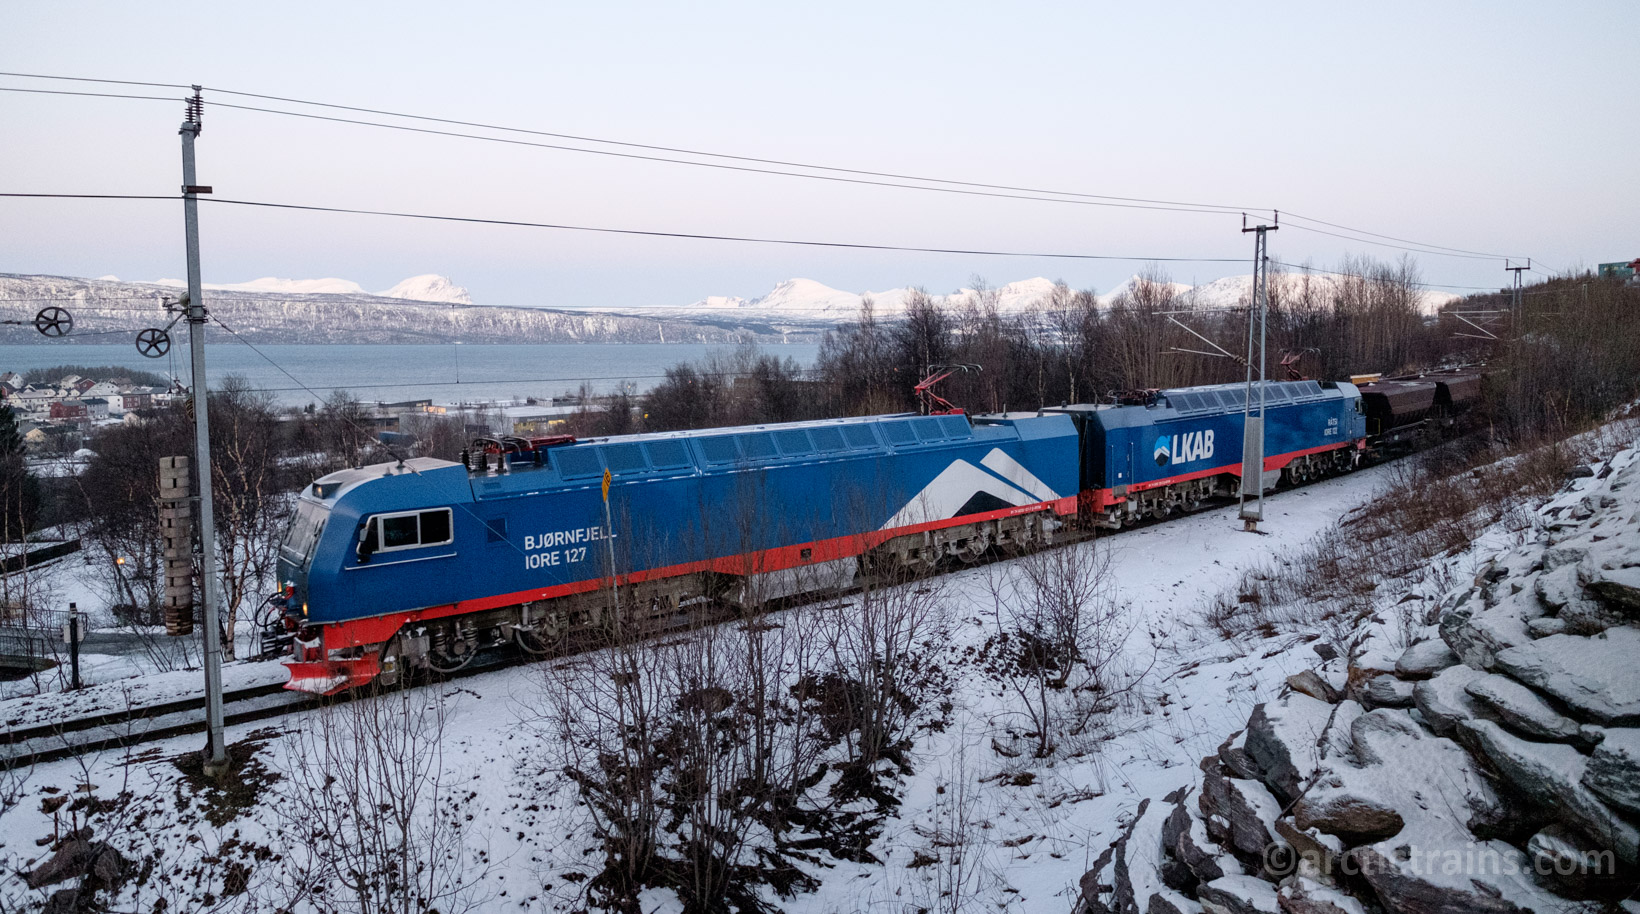 LKAB IORE 127 Bjørnfjell +122 Råtsi and  loaded F050s in service 9908 arrive at Narvik C ,  2016-13-01 10:28  (Photo: Terje Storjord)